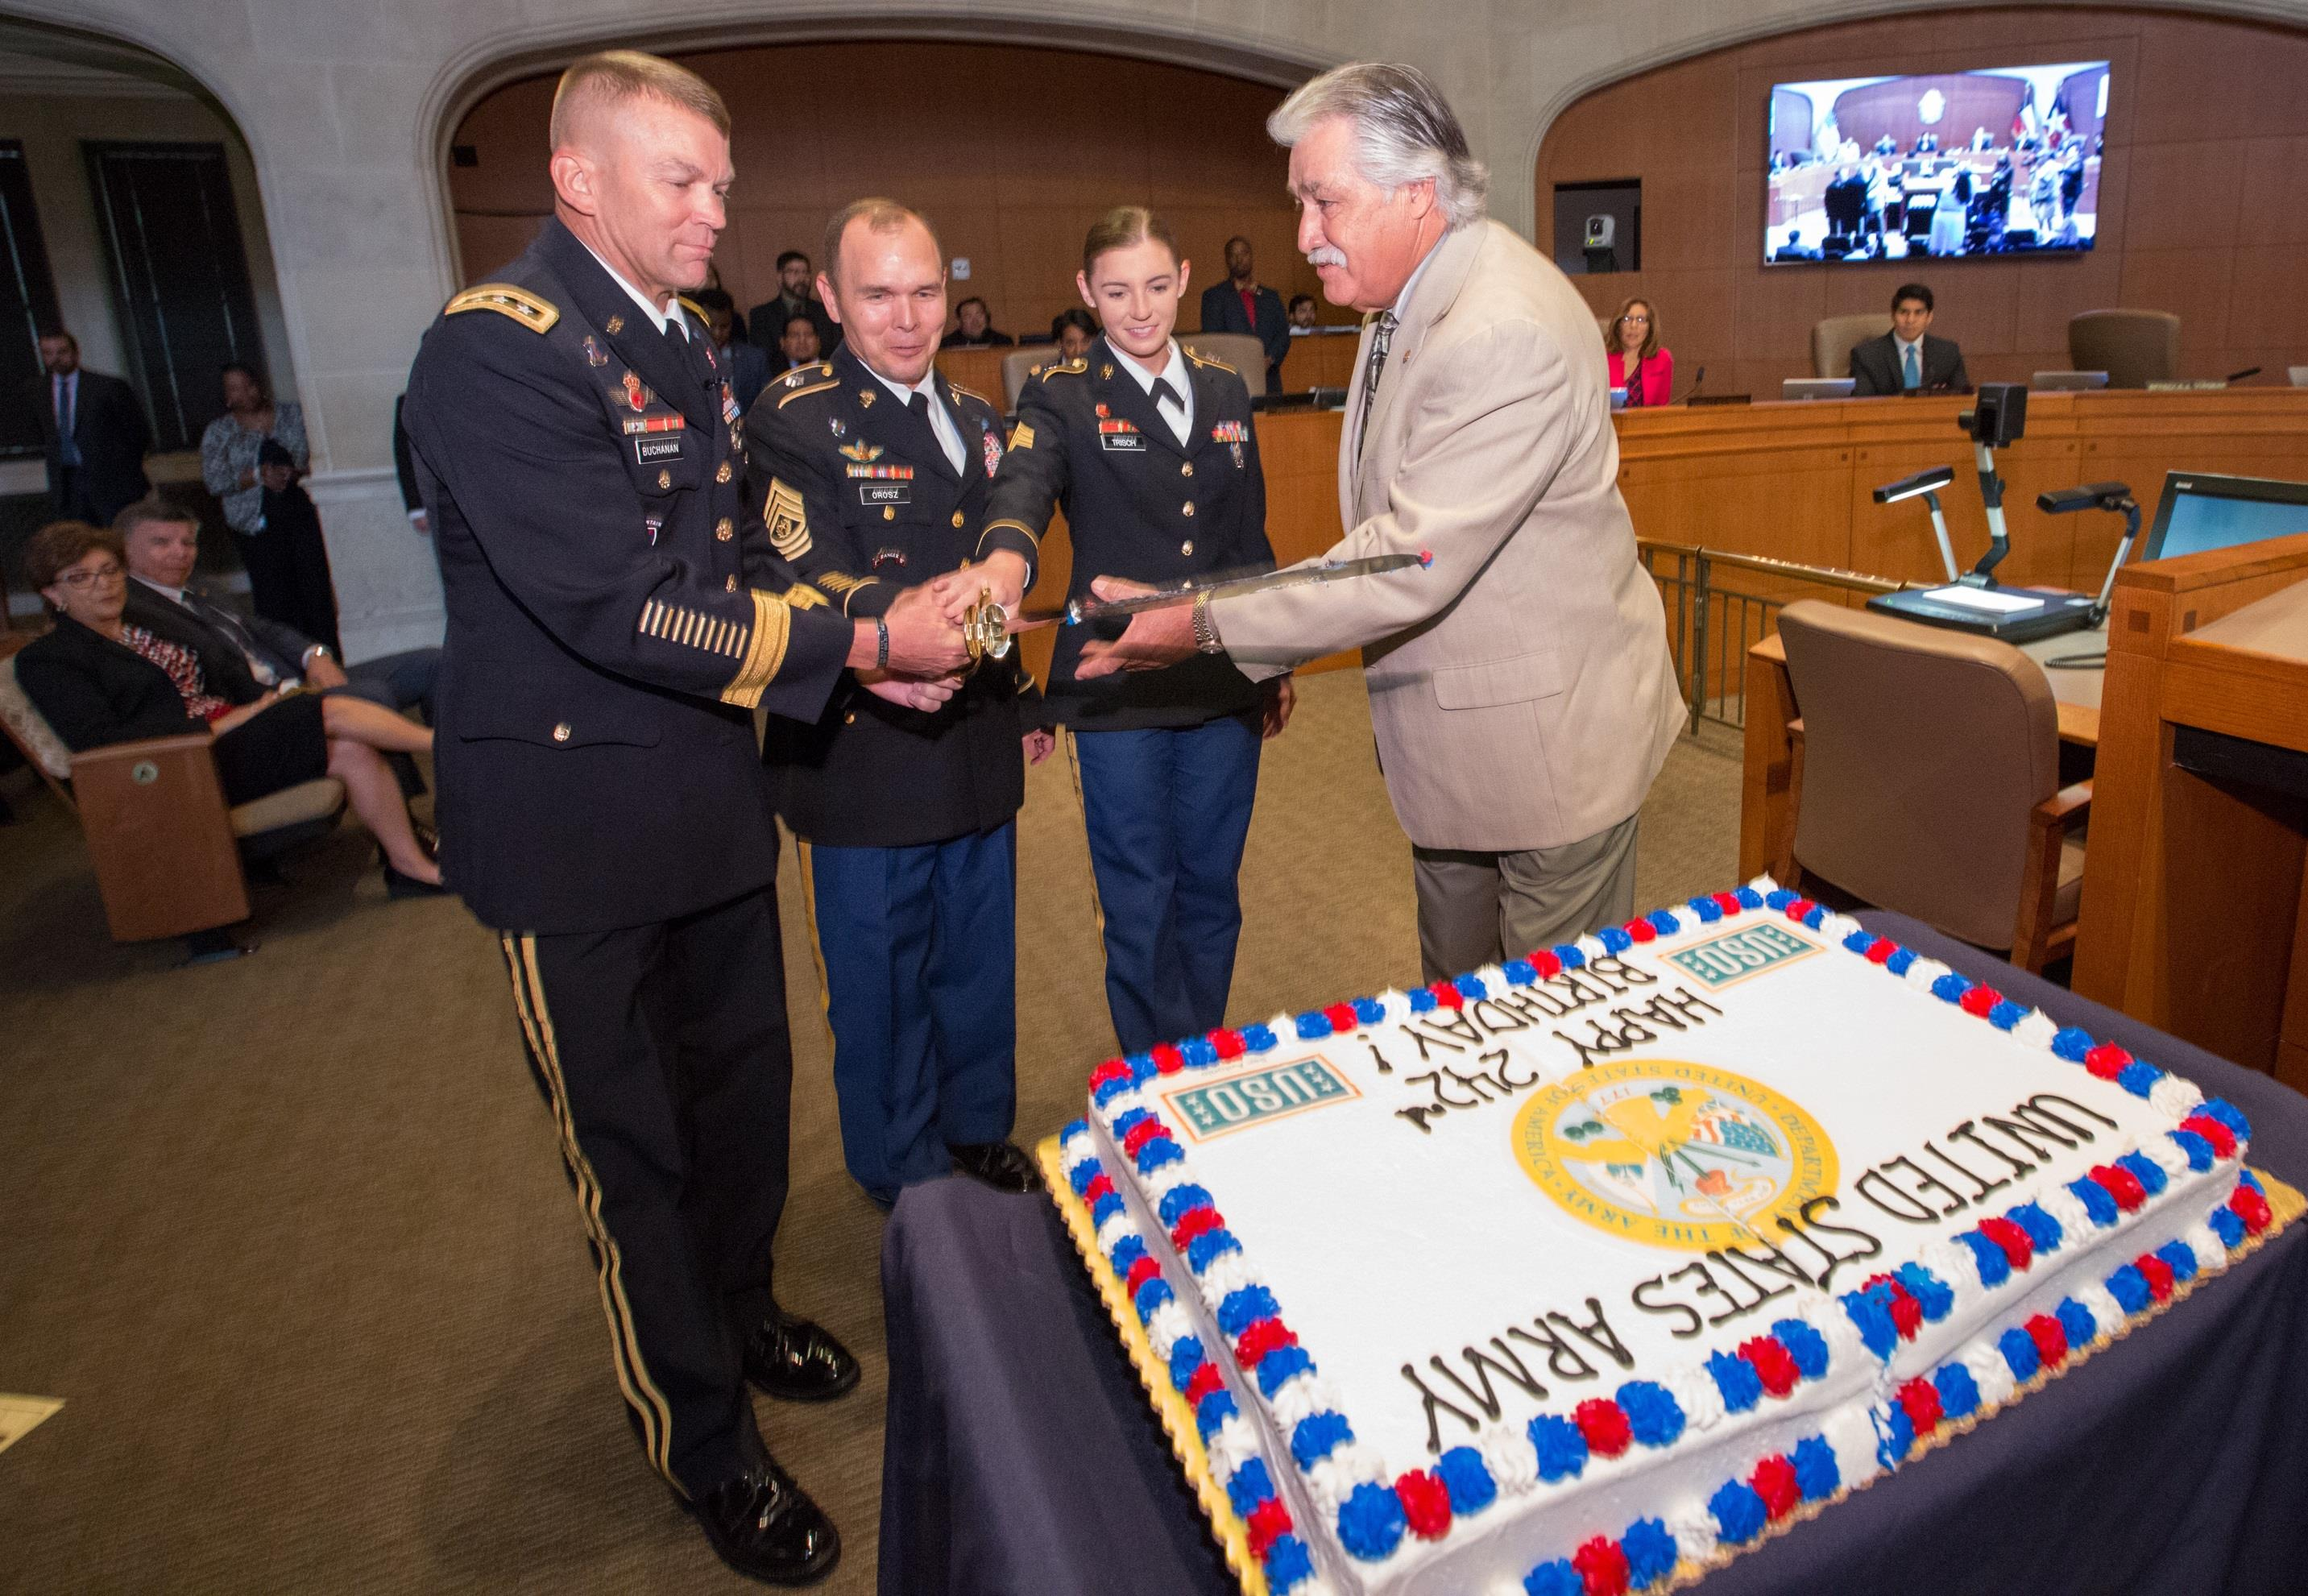 Army North celebrates 242nd Army birthday with City Hall ceremony